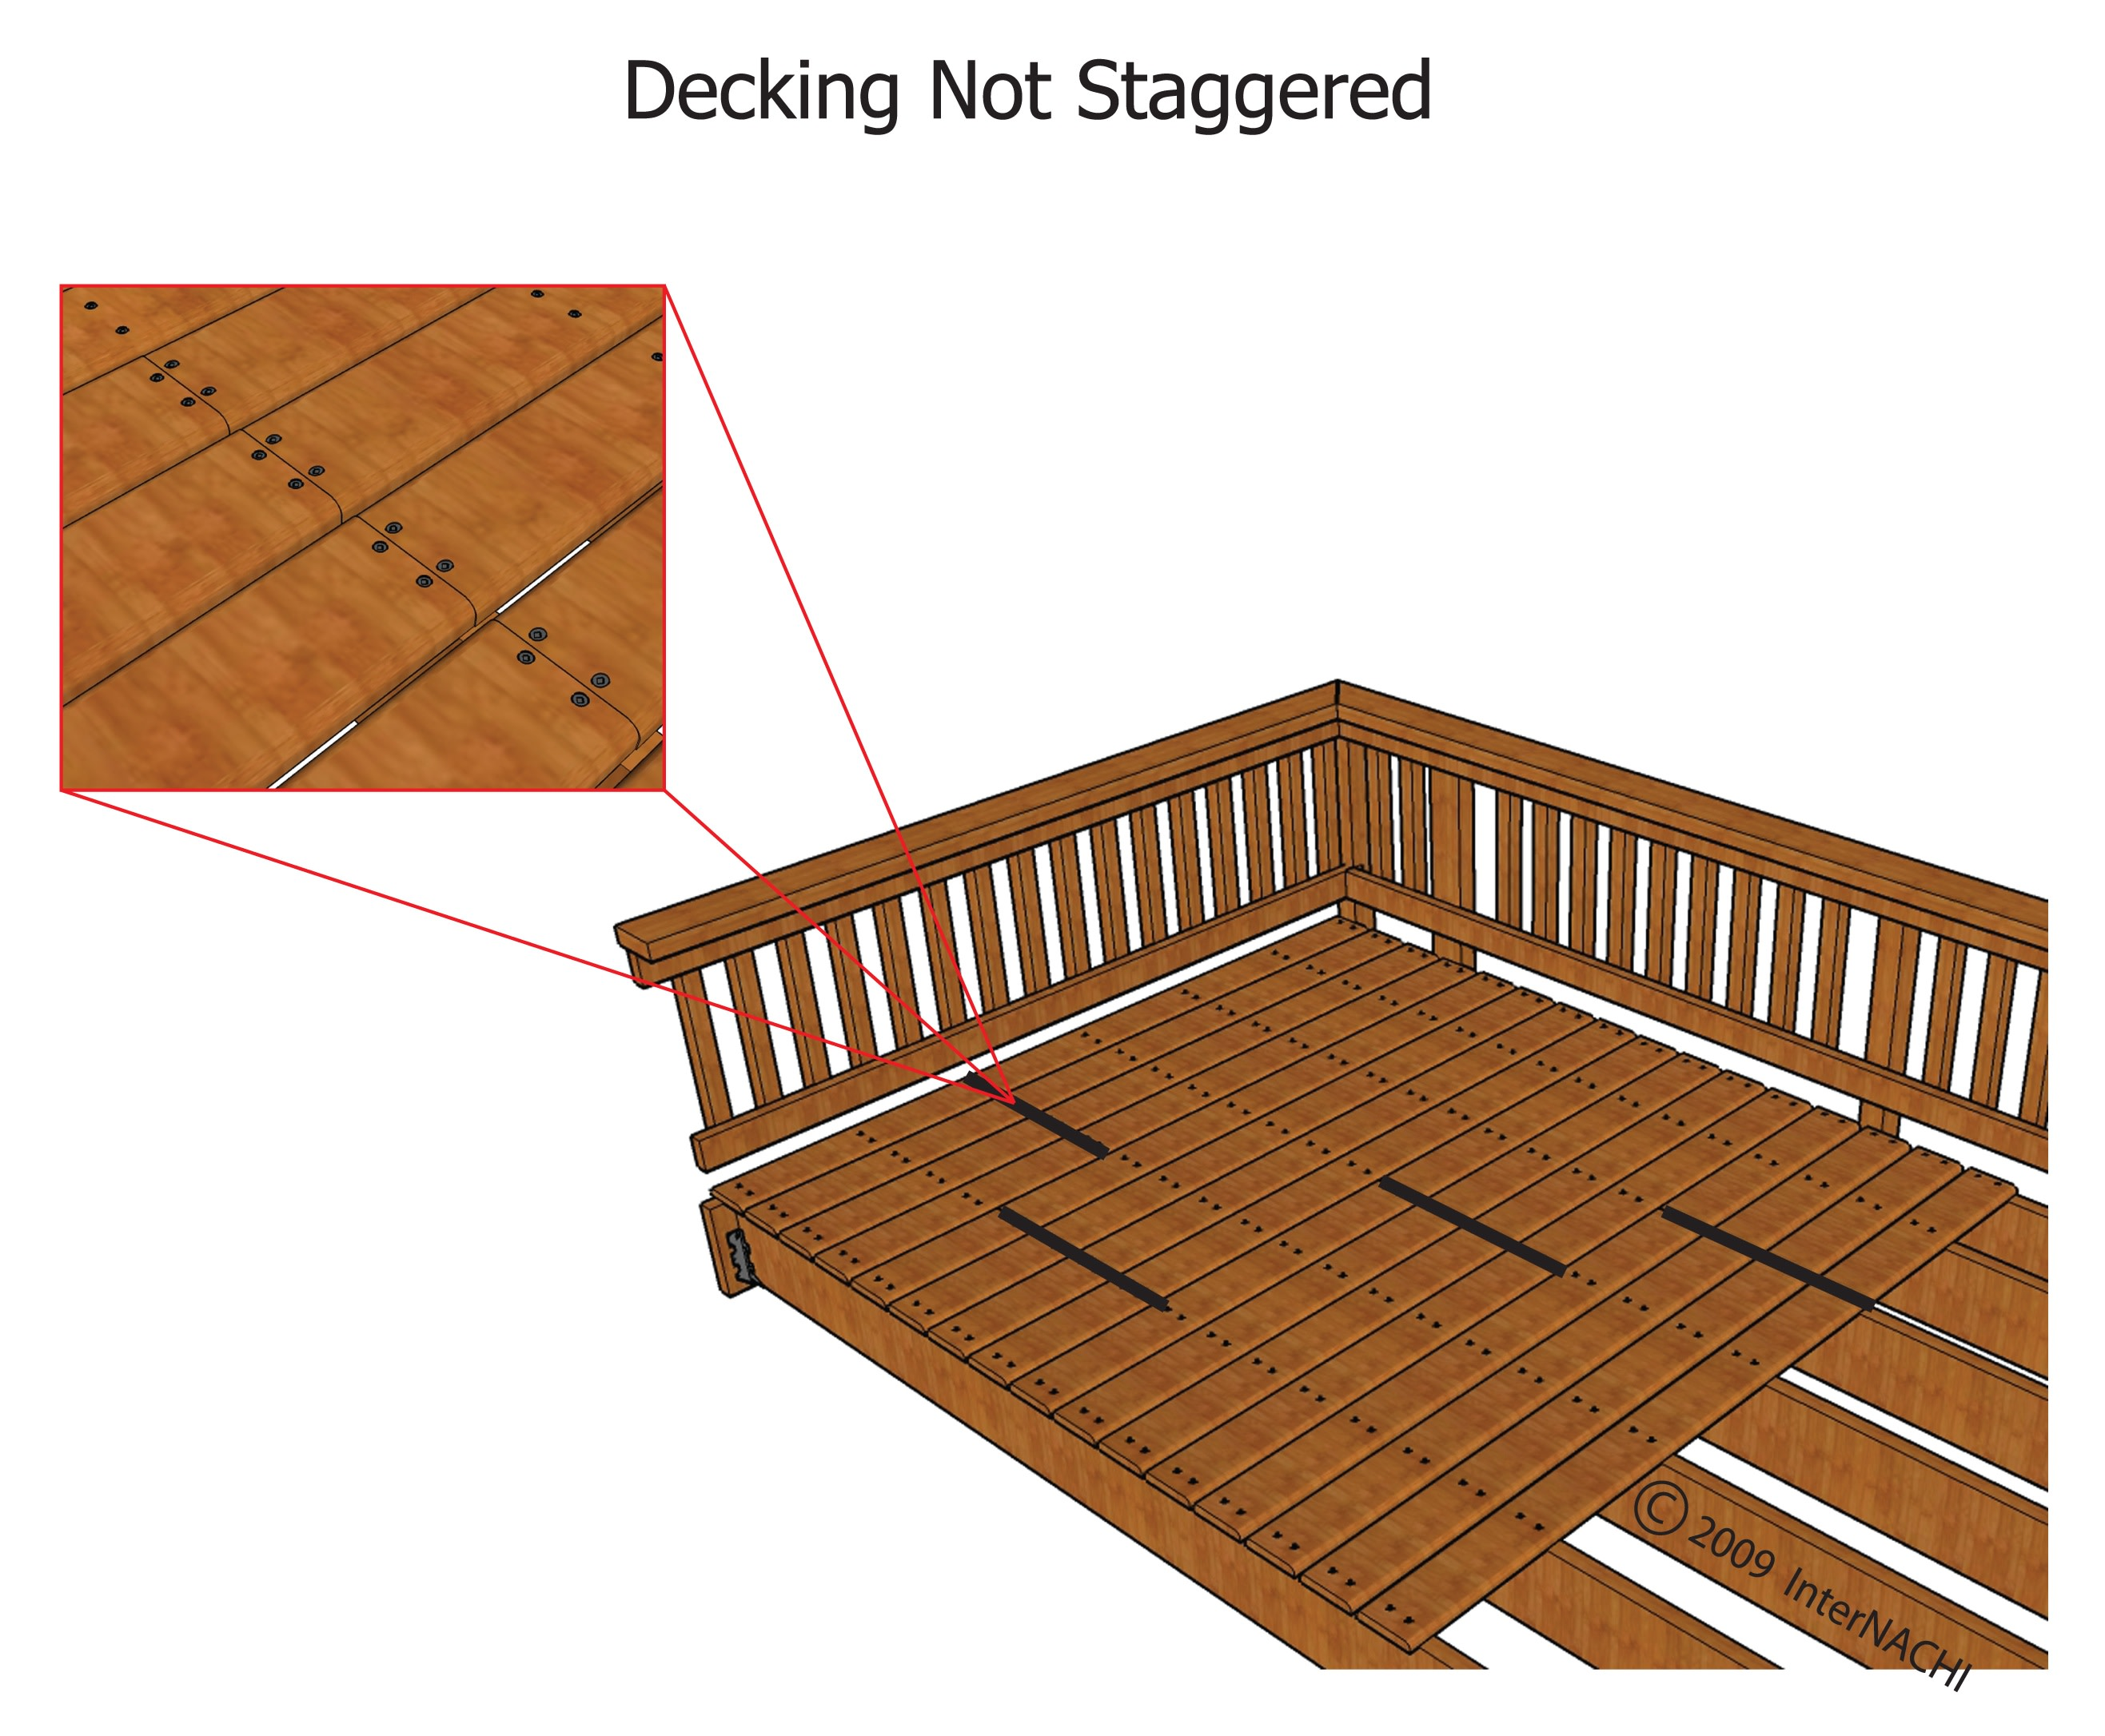 Decking not staggered.